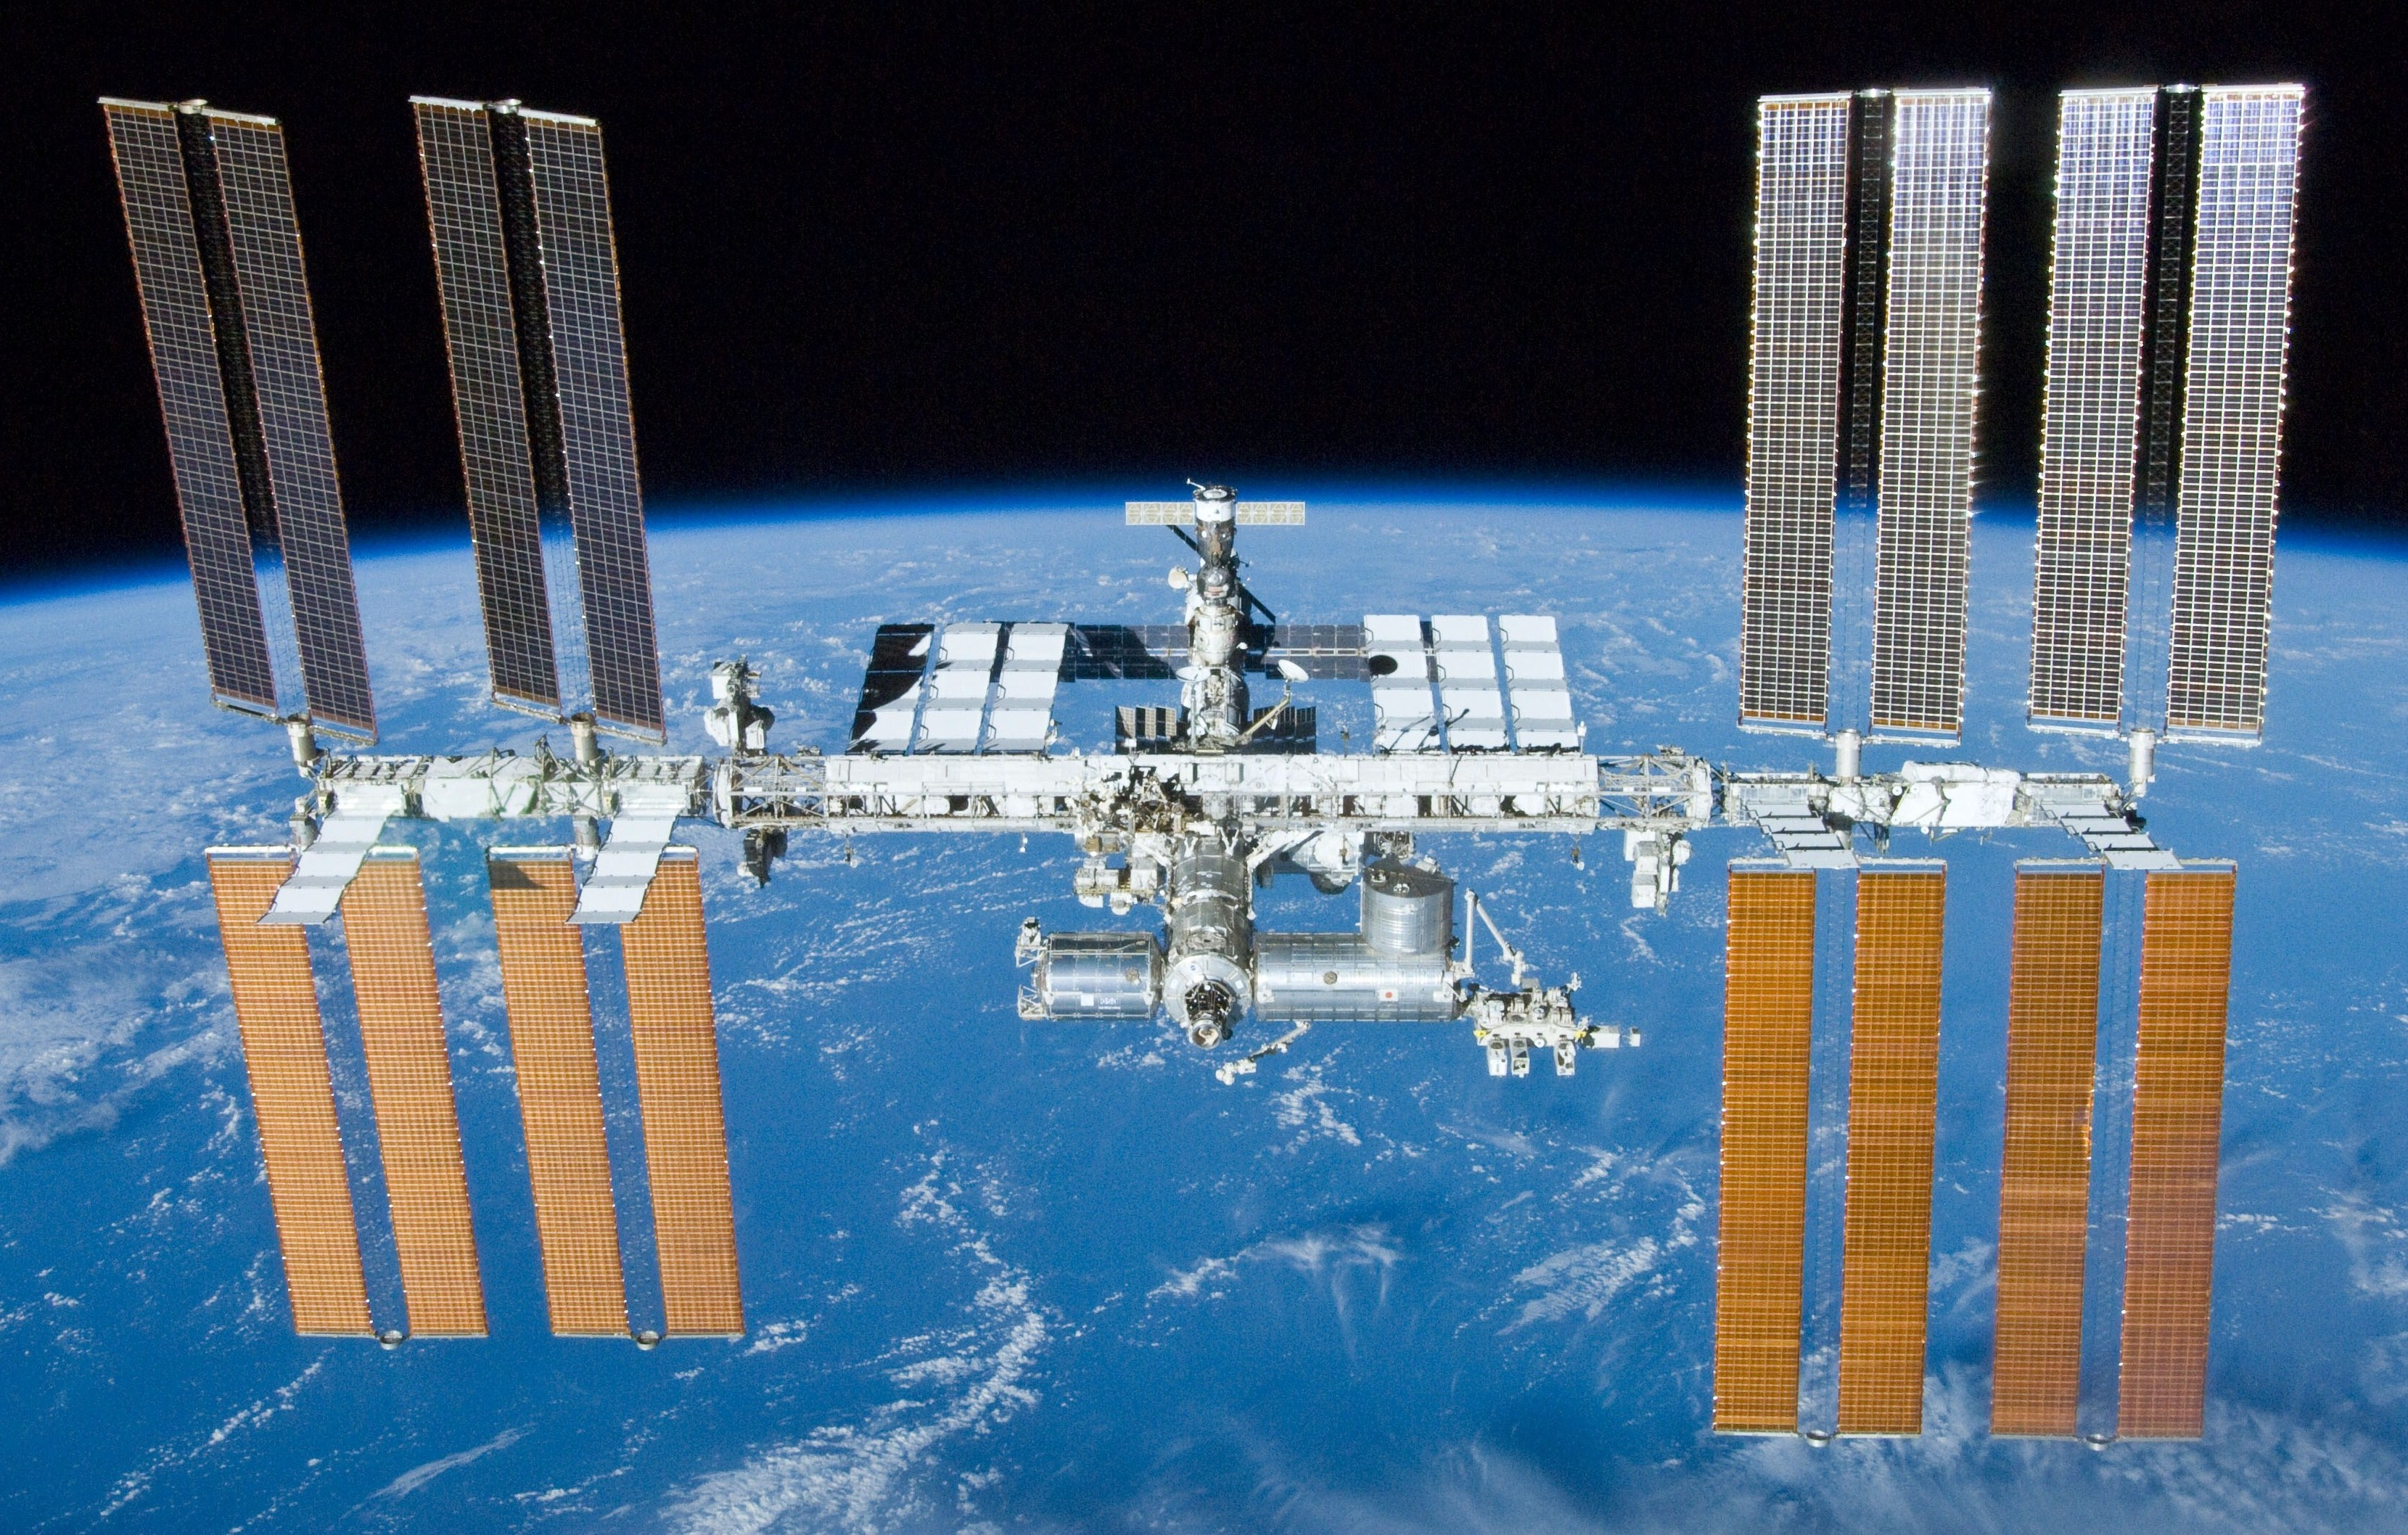 New holiday destination International Space Station